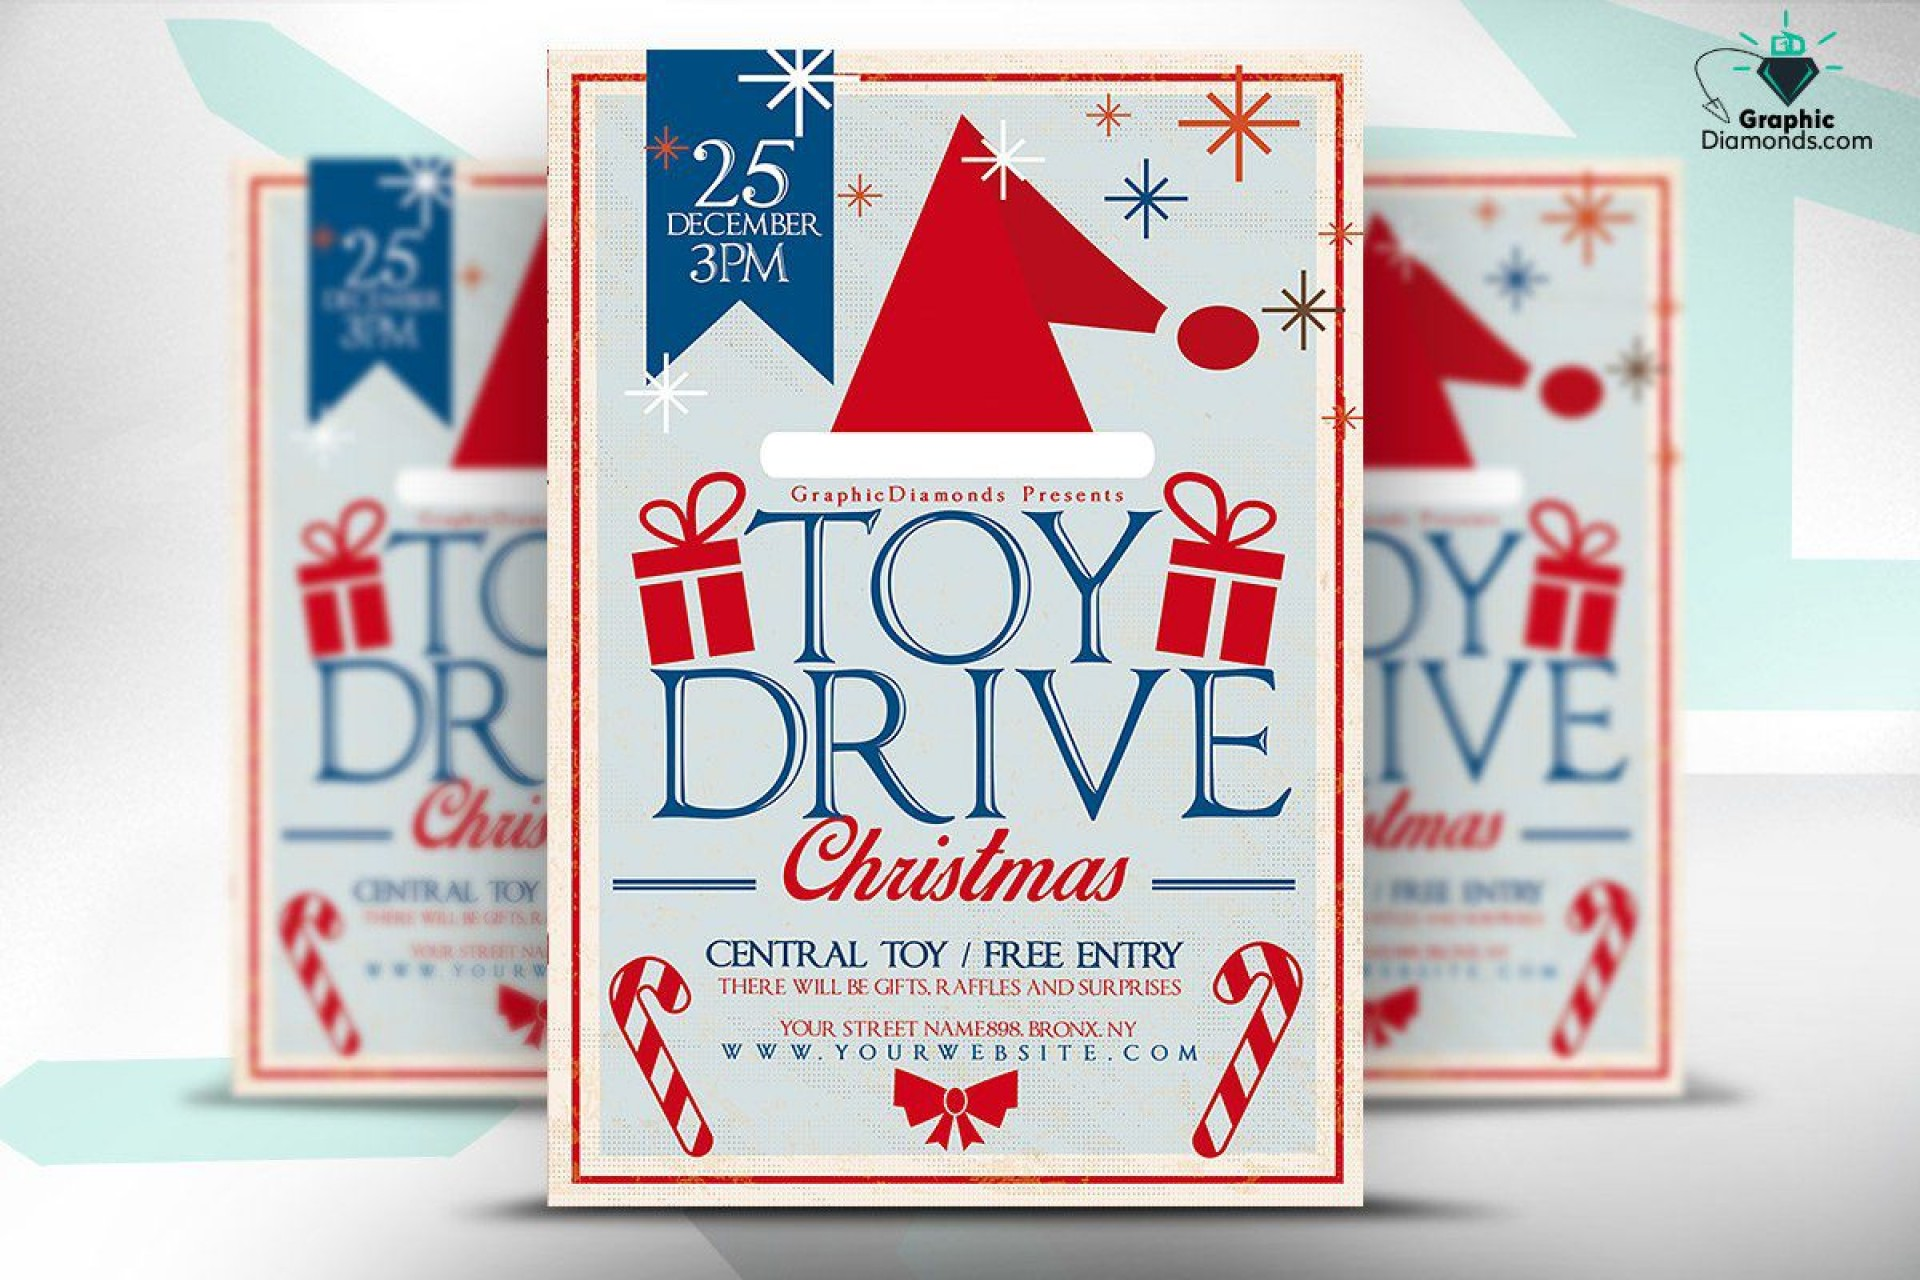 009 Magnificent Toy Drive Flyer Template Inspiration  Holiday Download Free Word1920